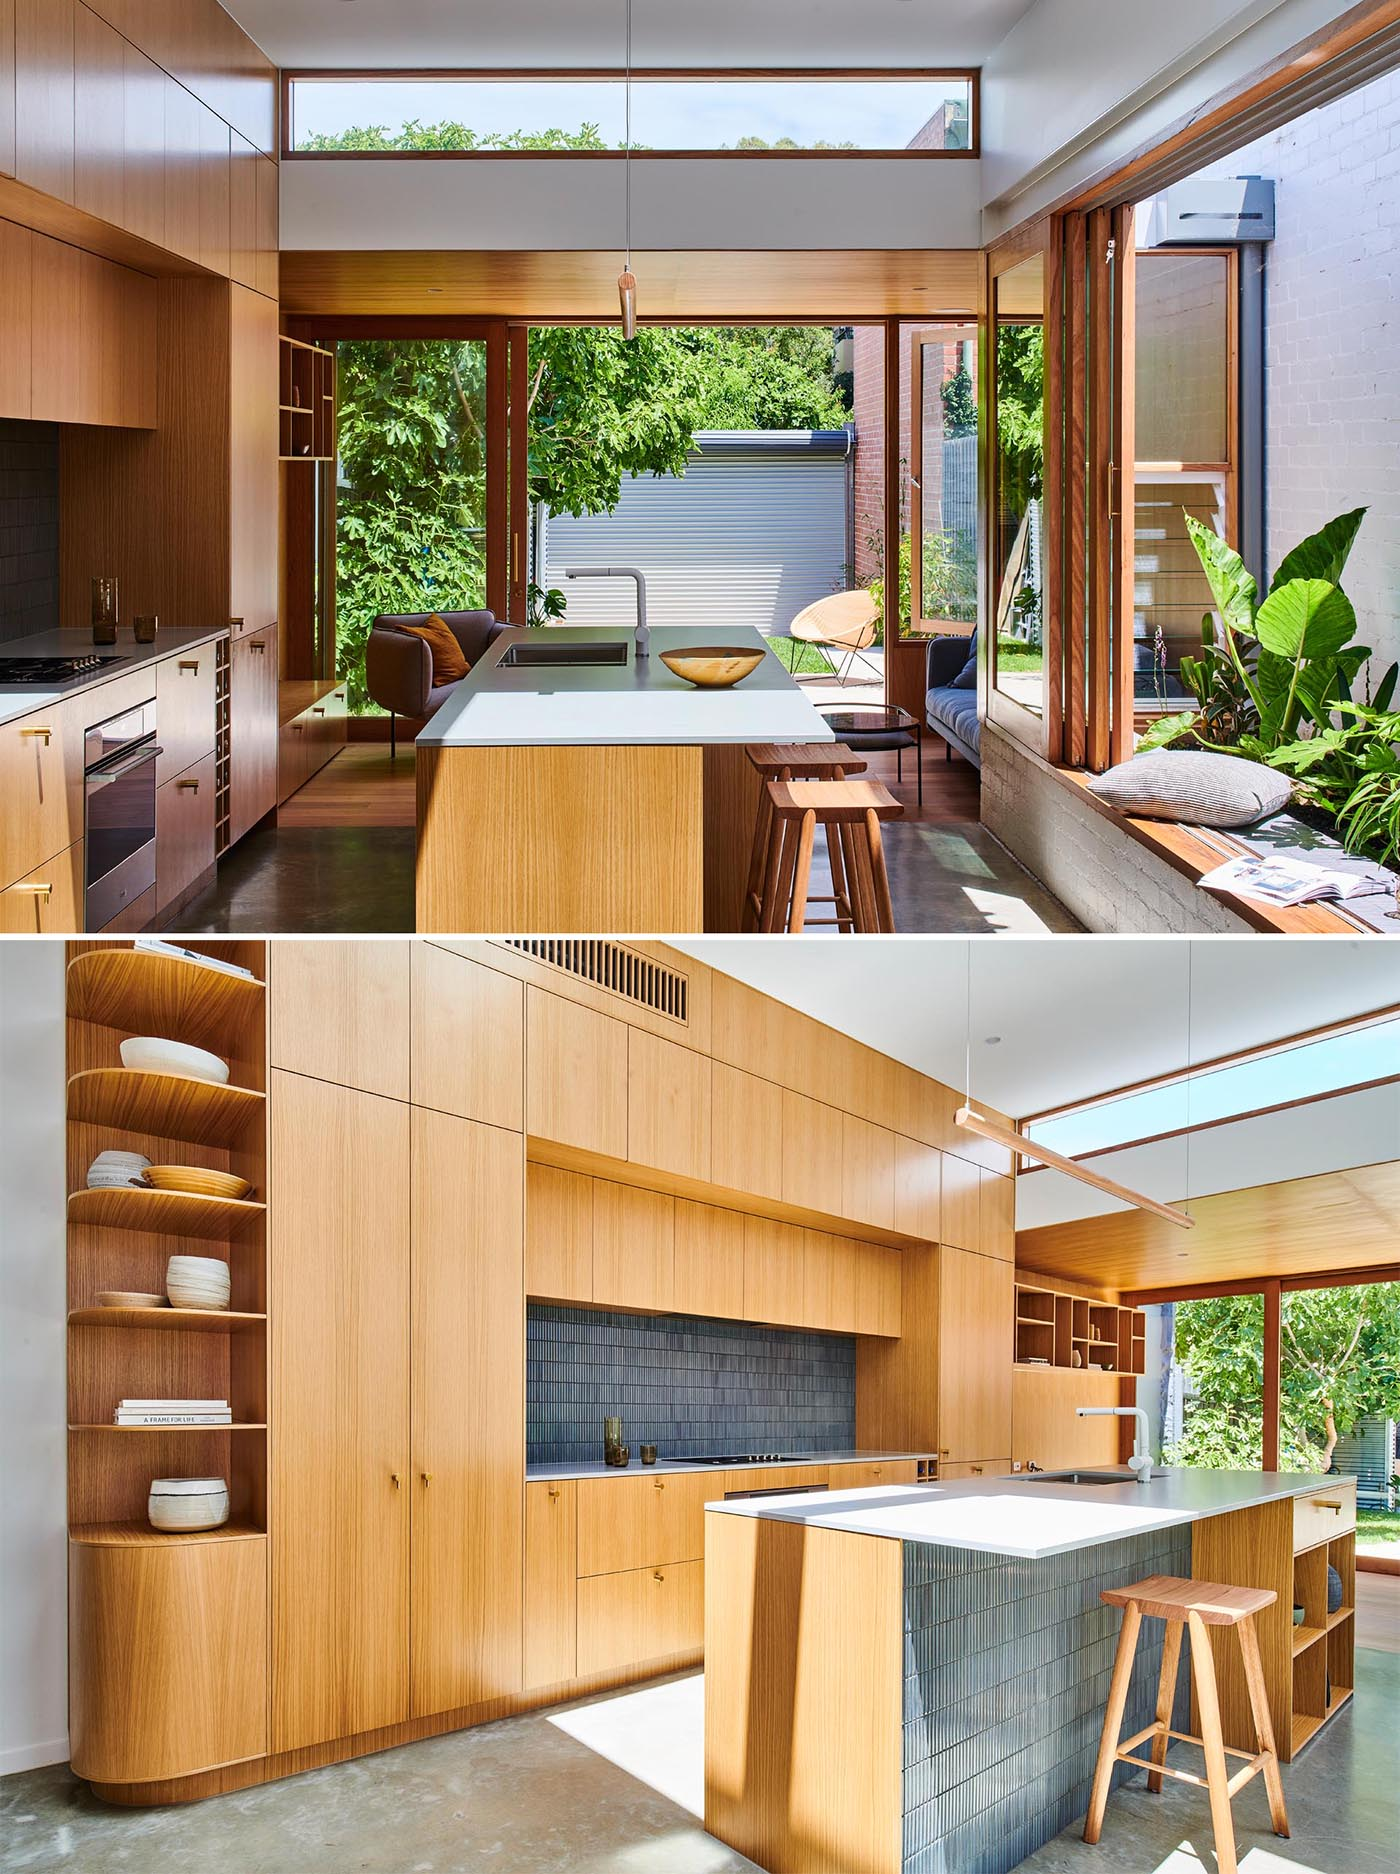 A modern wood kitchen with a large window open to a small garden, gray tiles, an island, open shelving, white countertop, and built-in wine storage.